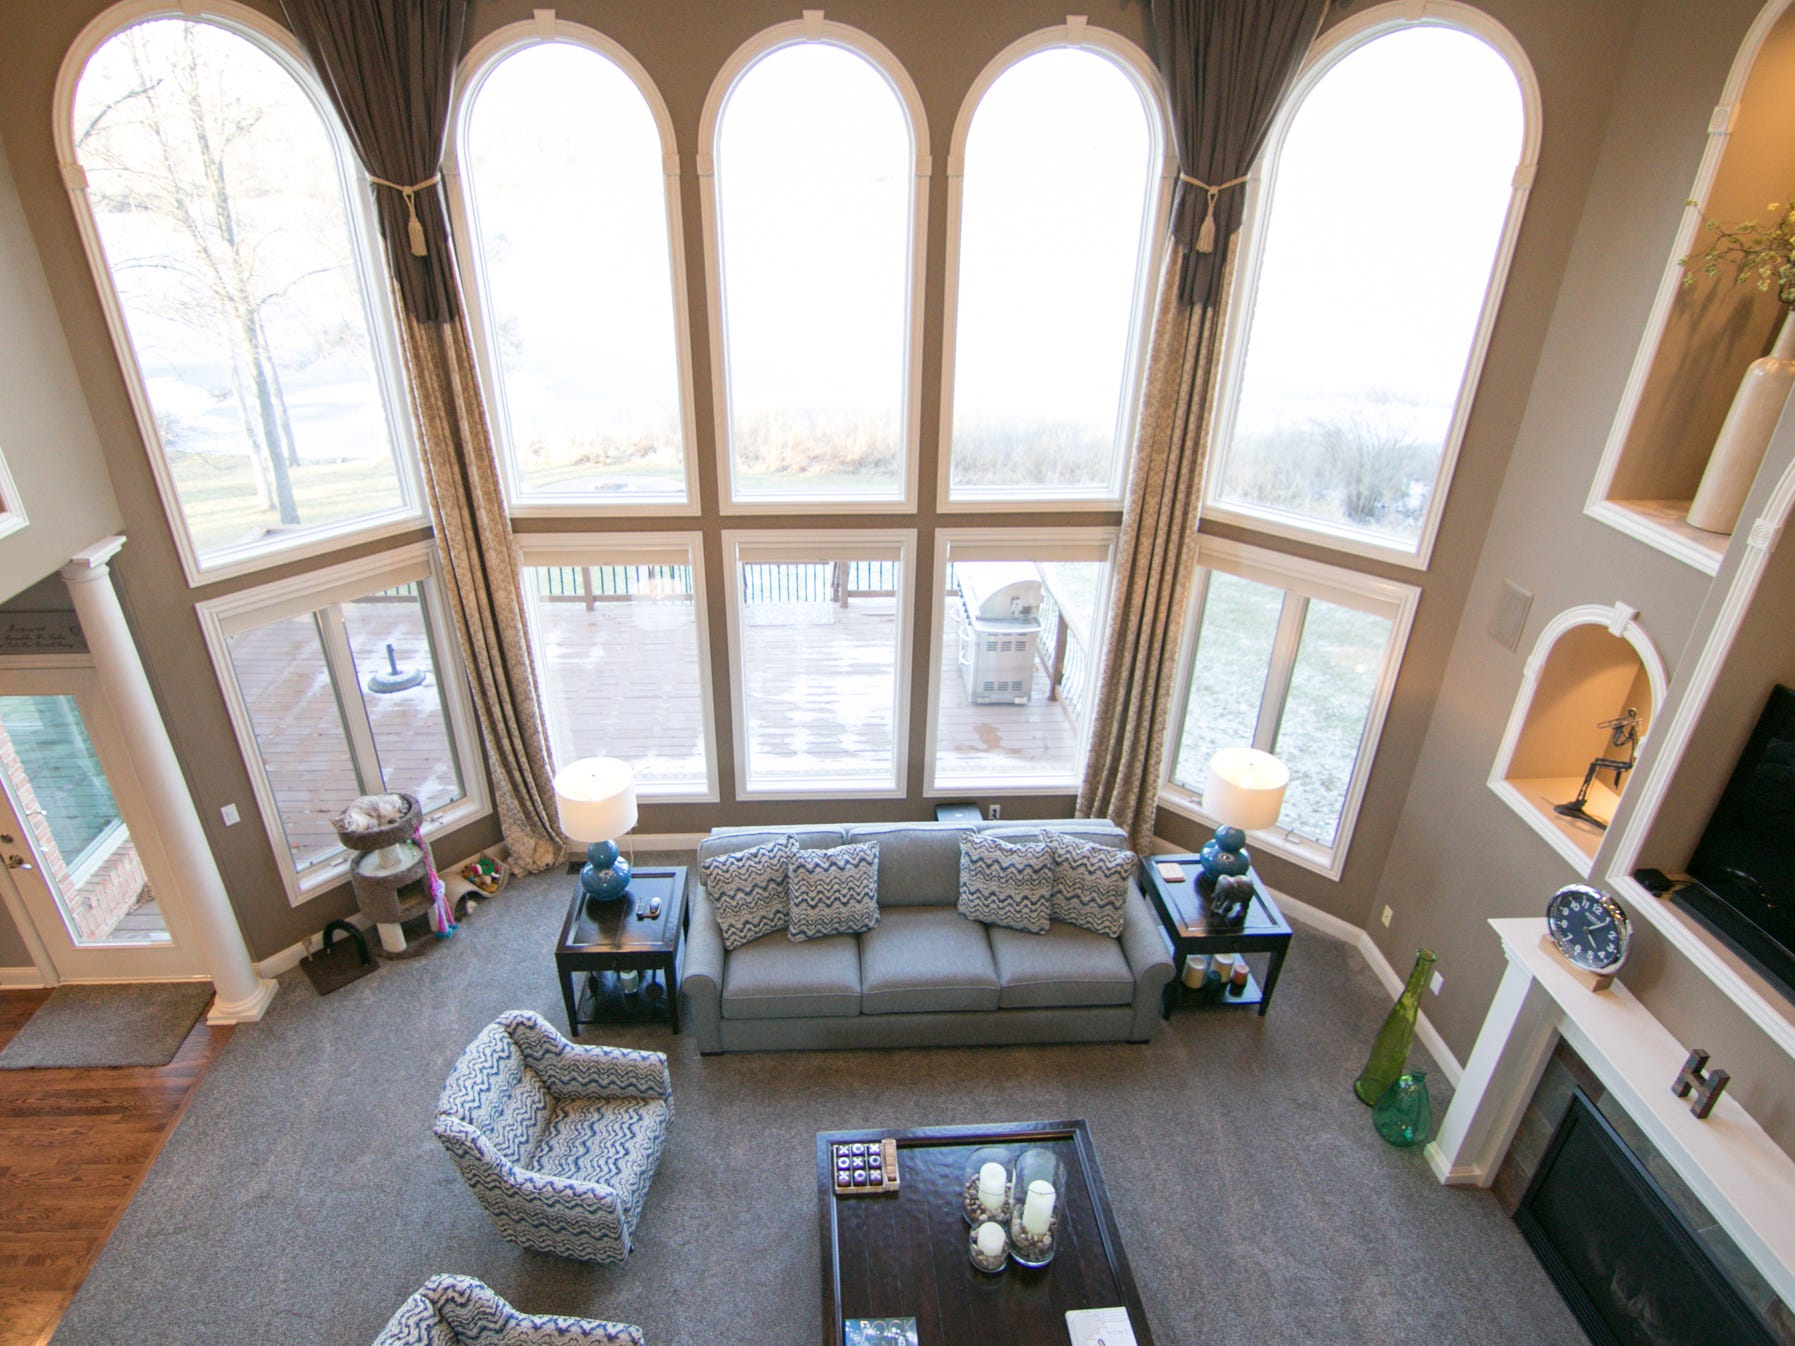 Floor-to-extra high ceiling windows in the living room provide a great view of Worden Lake as well as plentiful lighting in the Harris home, shown Friday, Jan. 4, 2019.